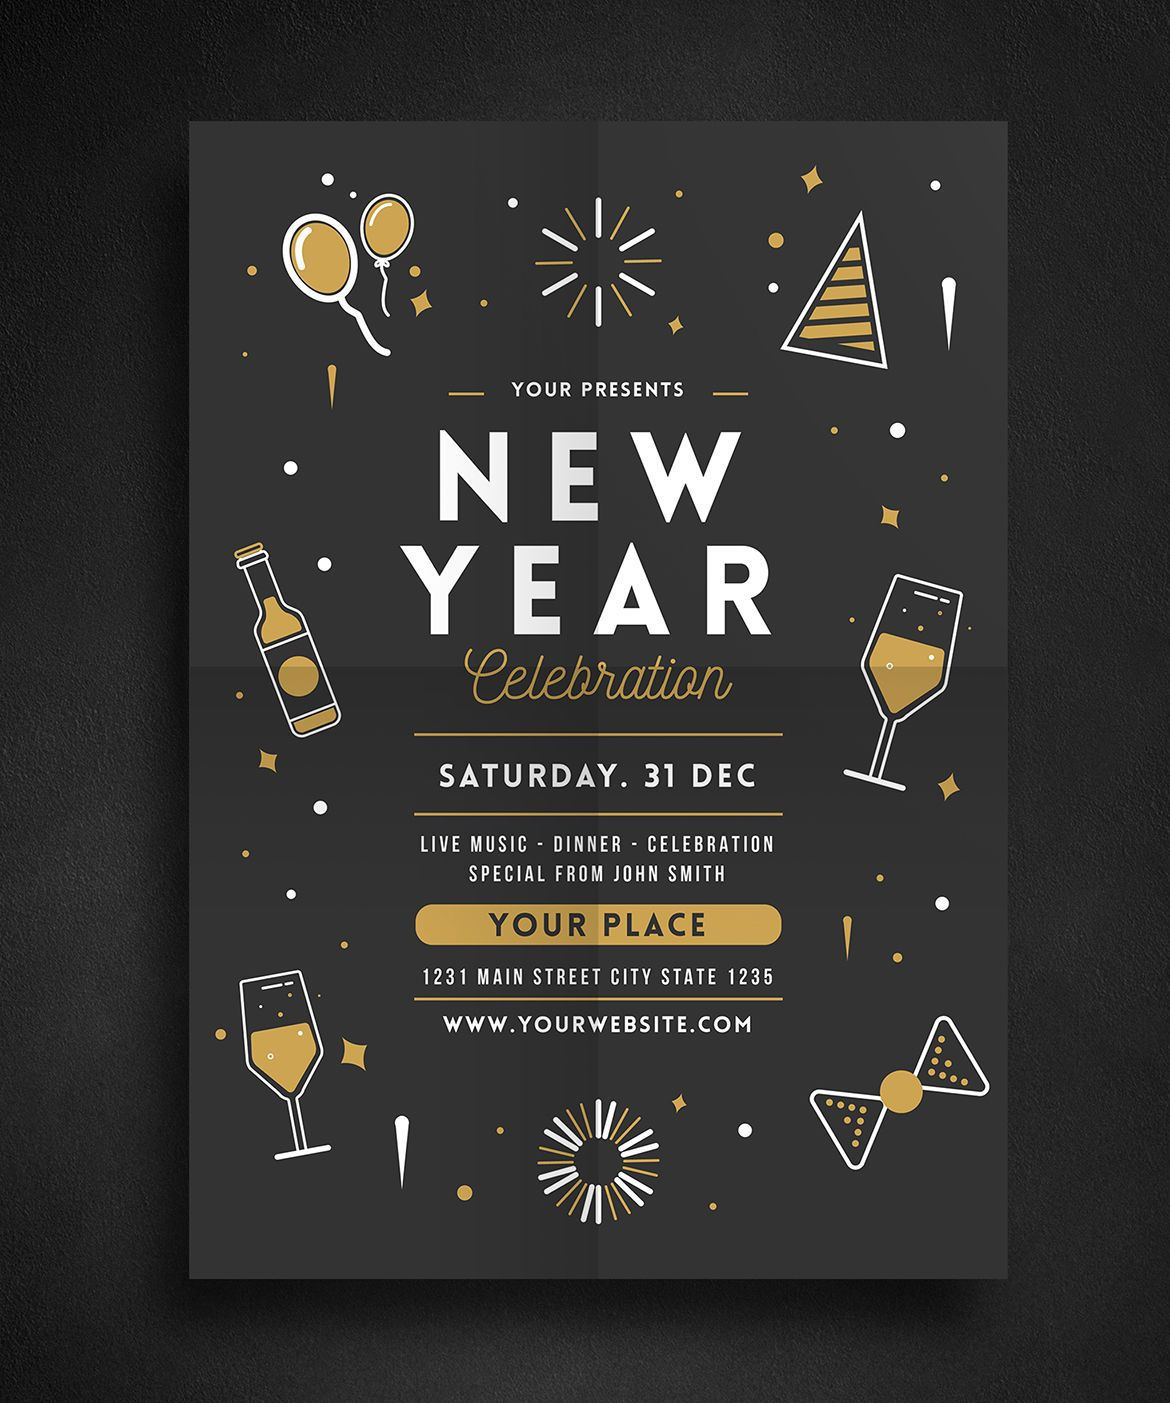 New Year Celebration Flyer Template Ai Psd  Illustration